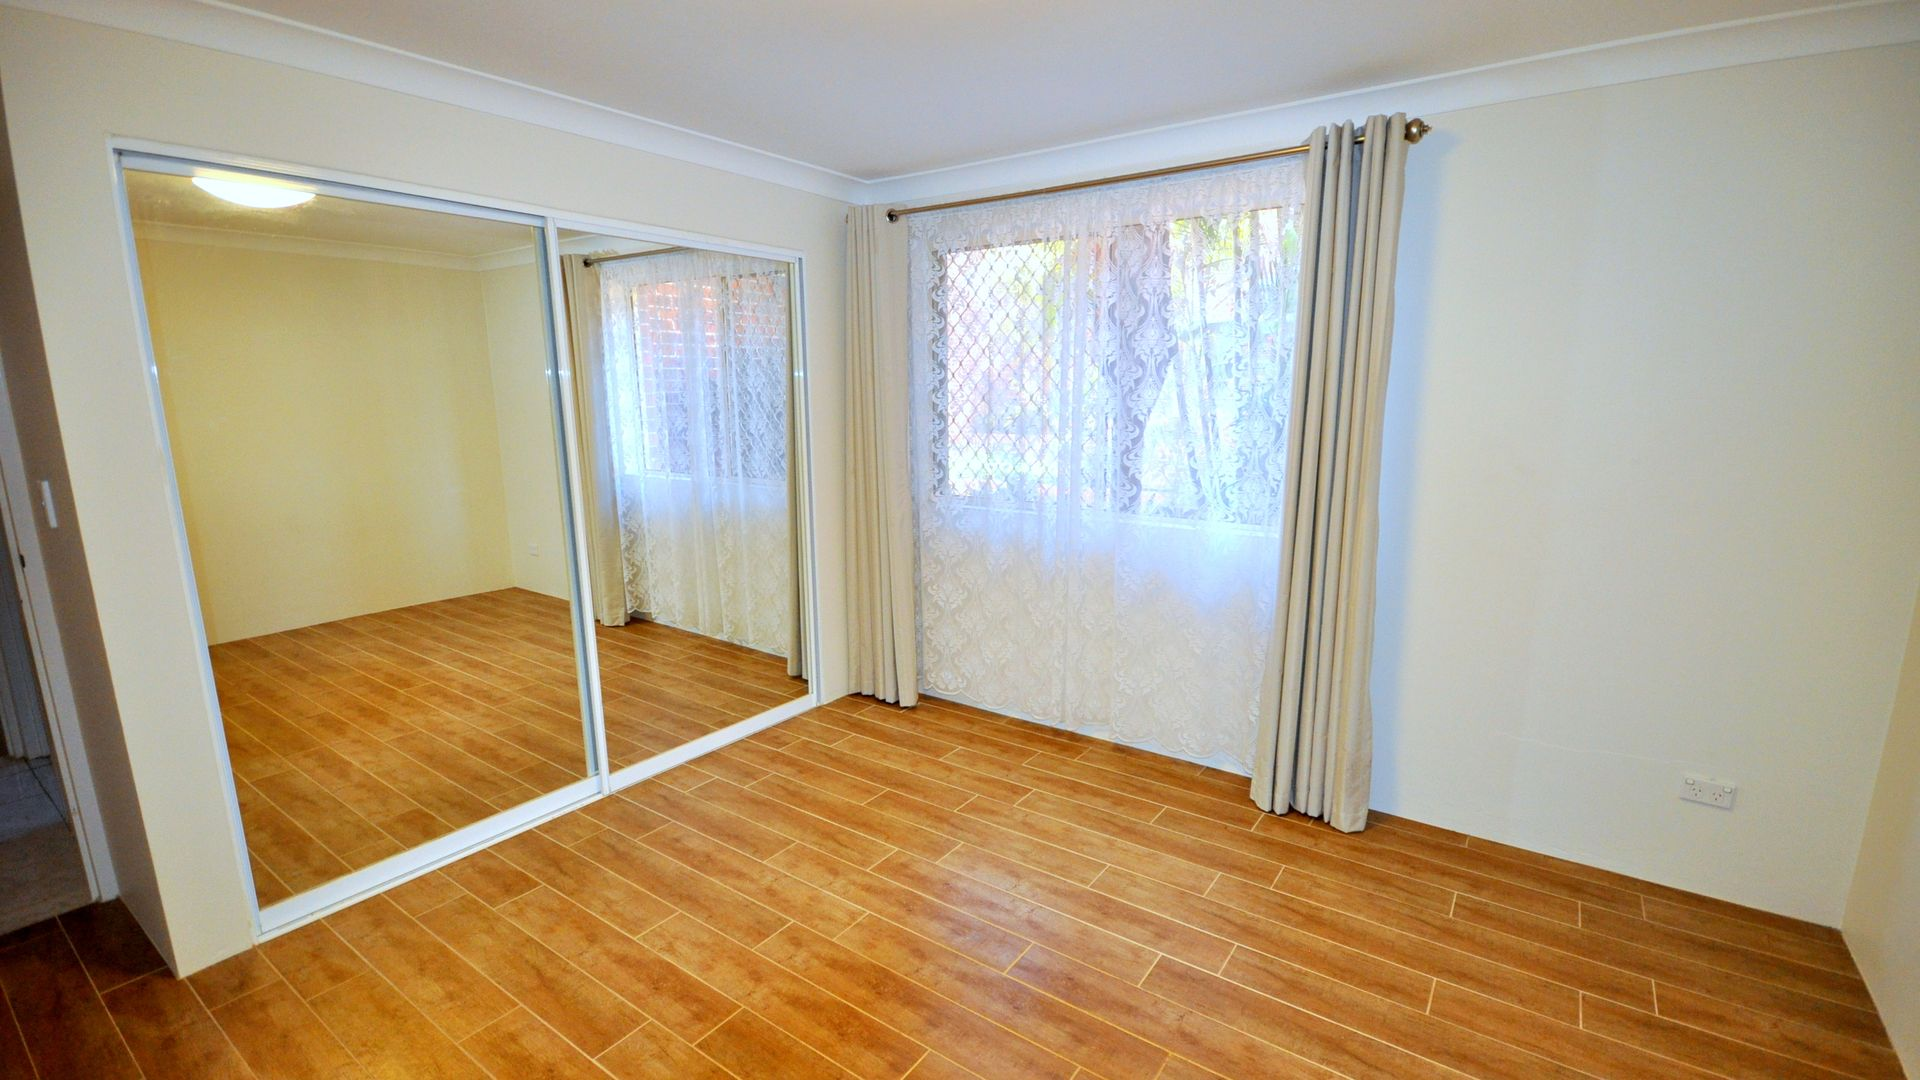 15/8-10 Weigand Avenue, Bankstown NSW 2200, Image 1